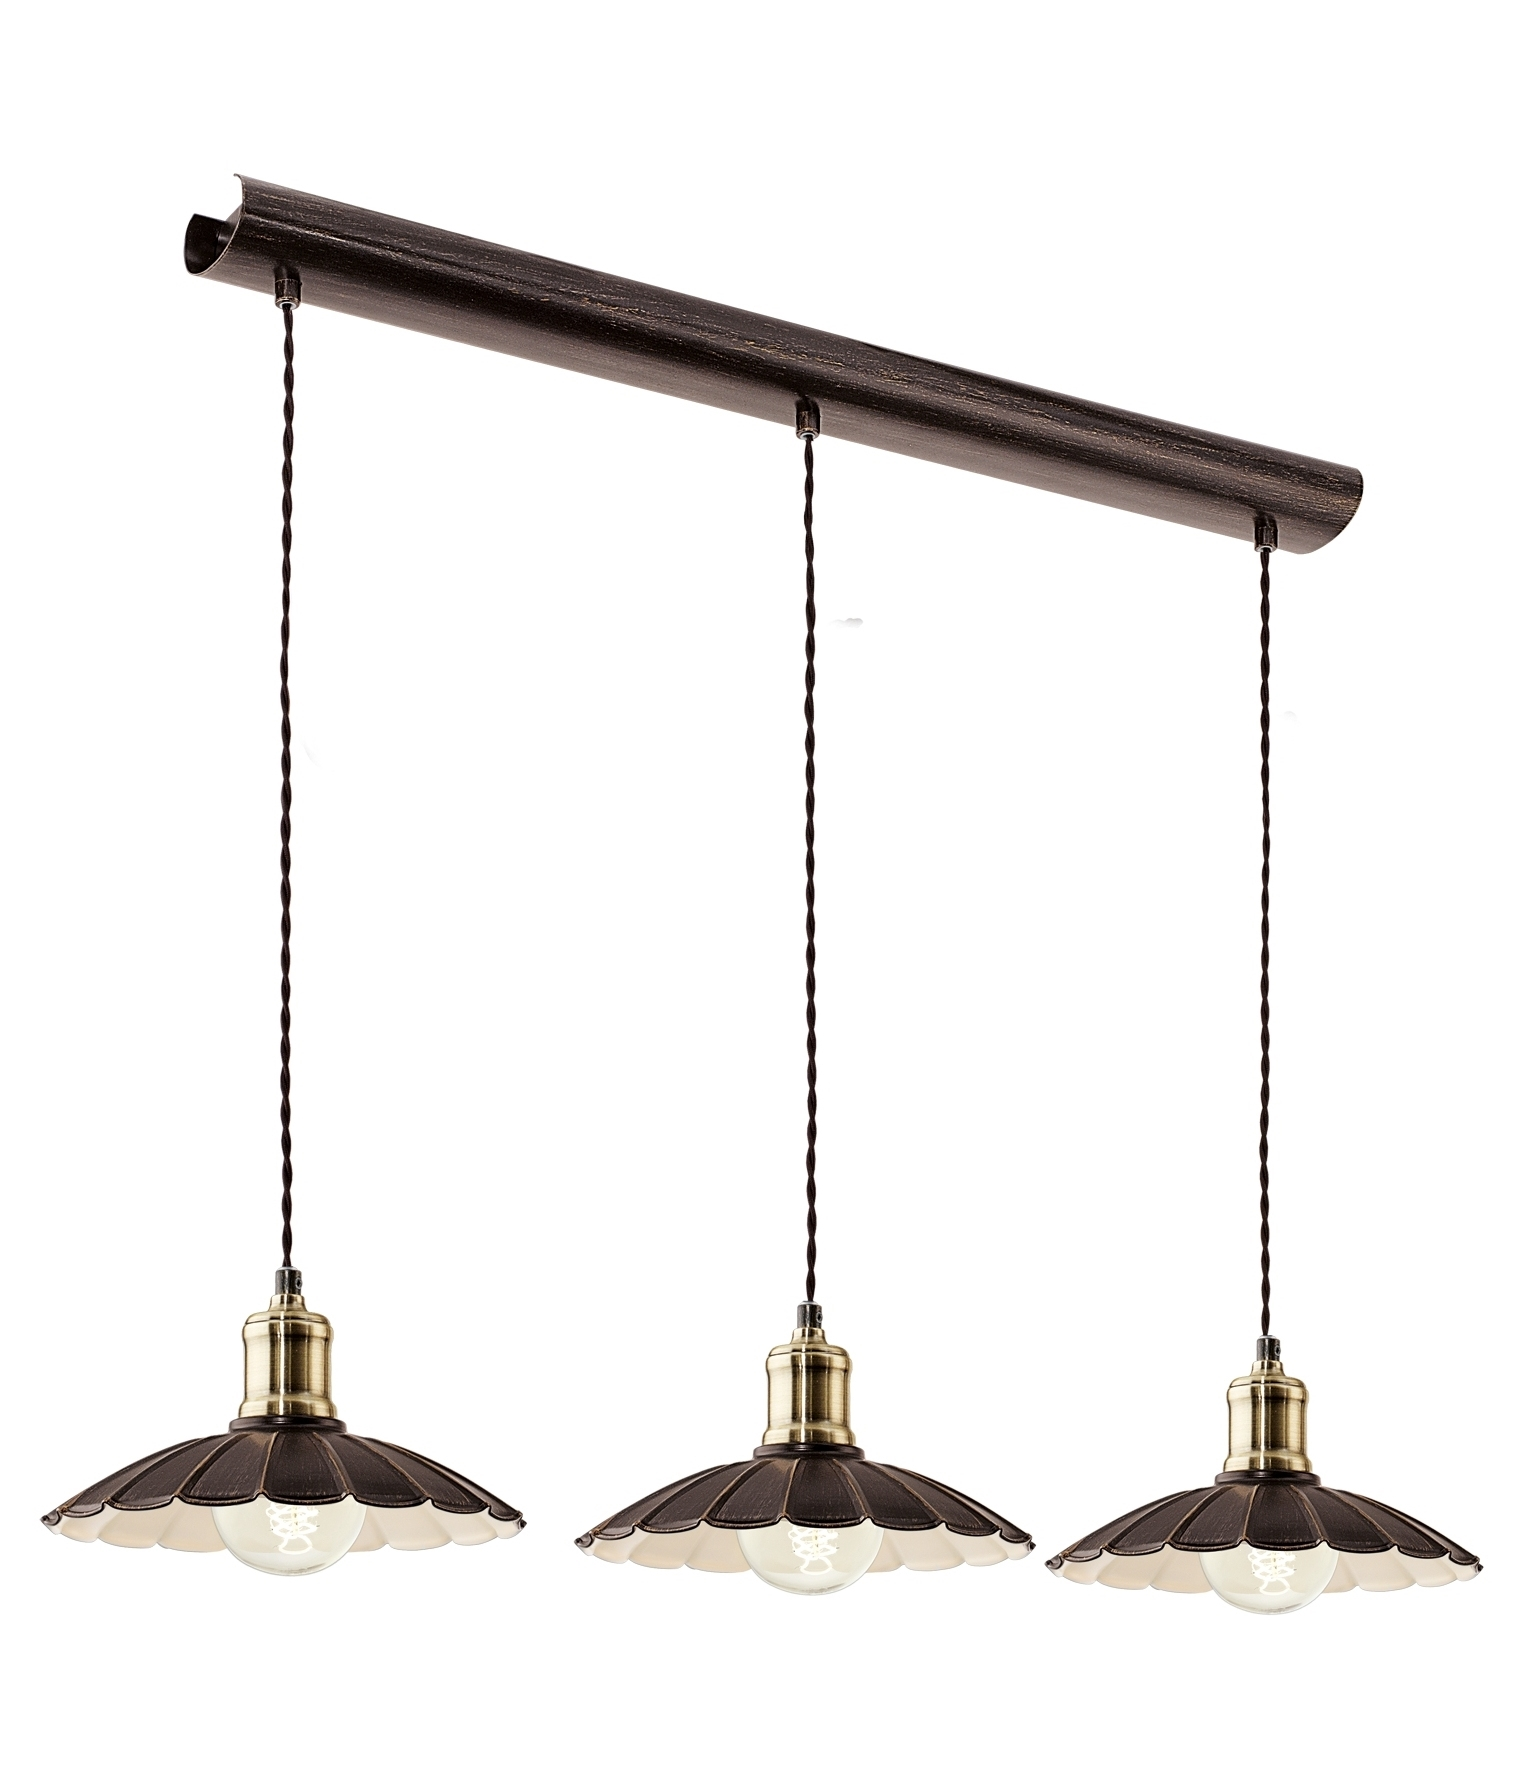 French Style 3 Light Pendants With Scalloped Edges